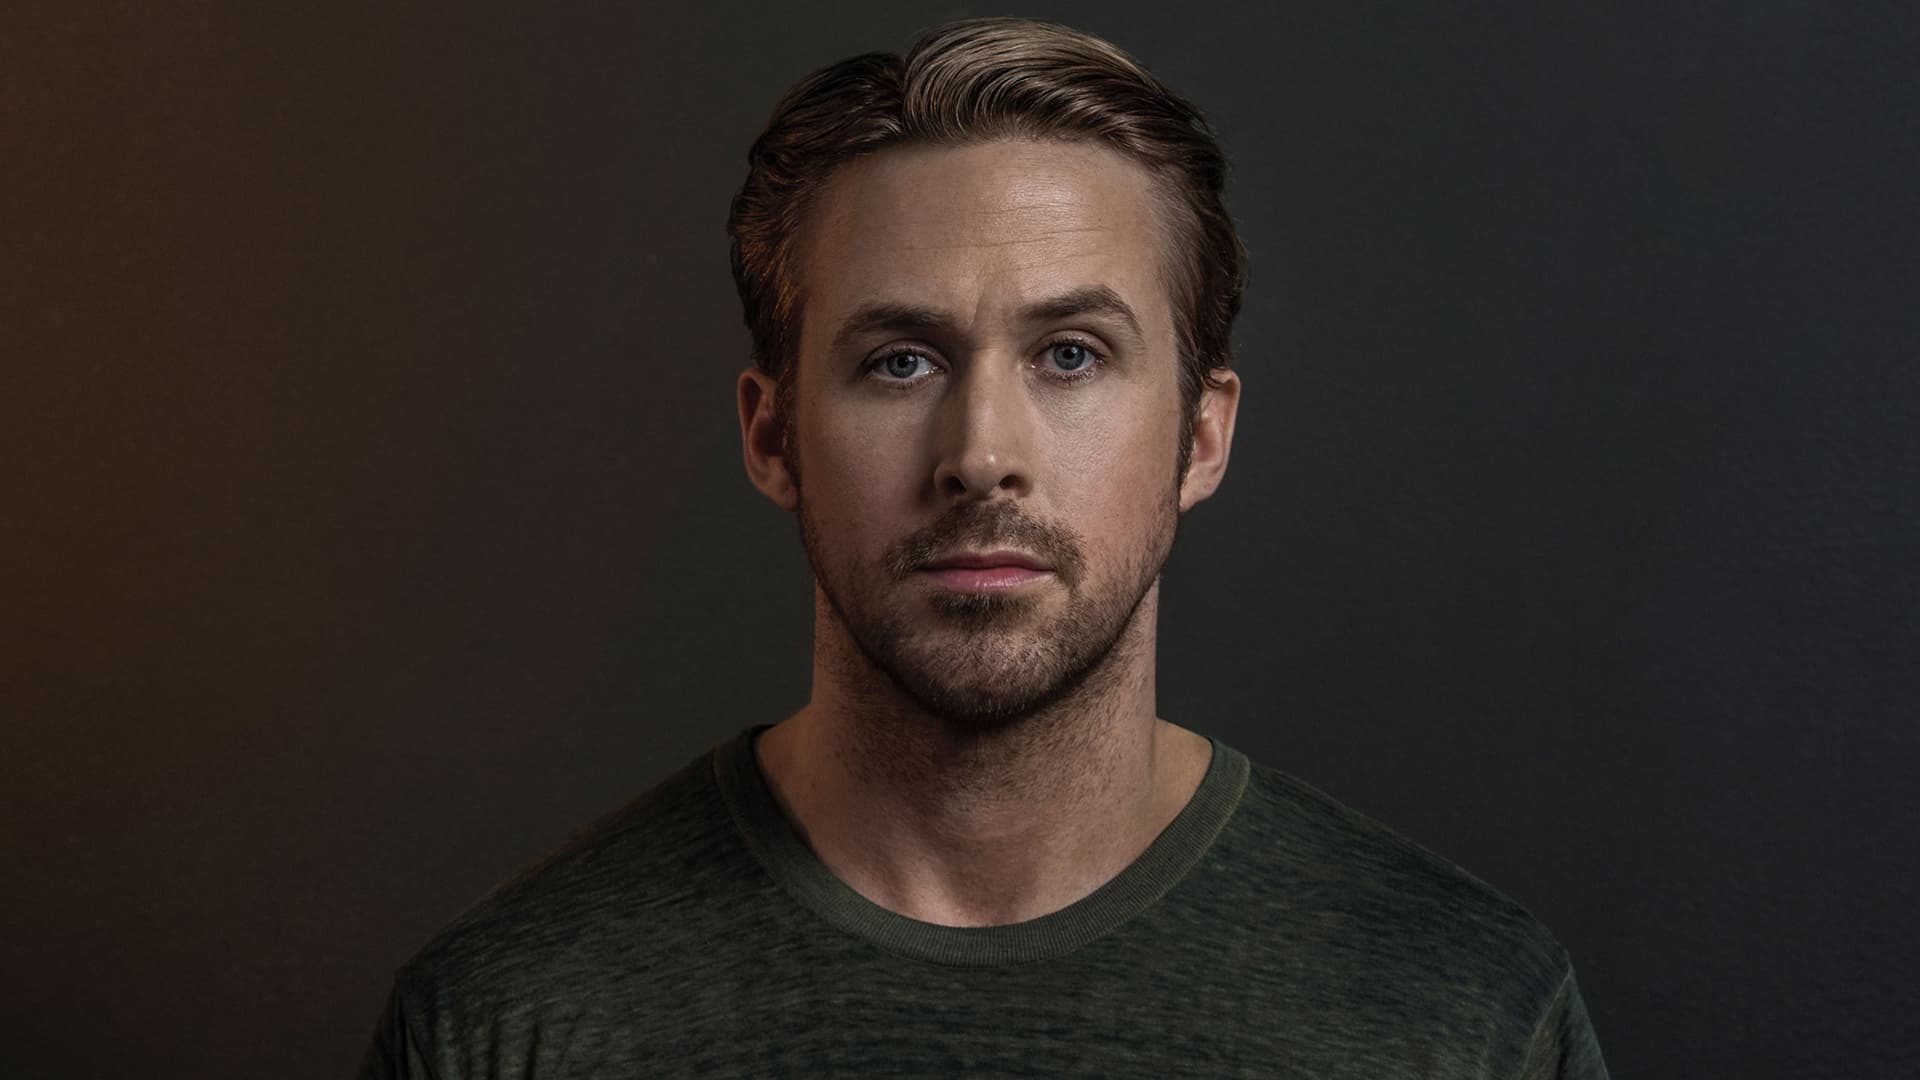 Ryan Gosling Background black